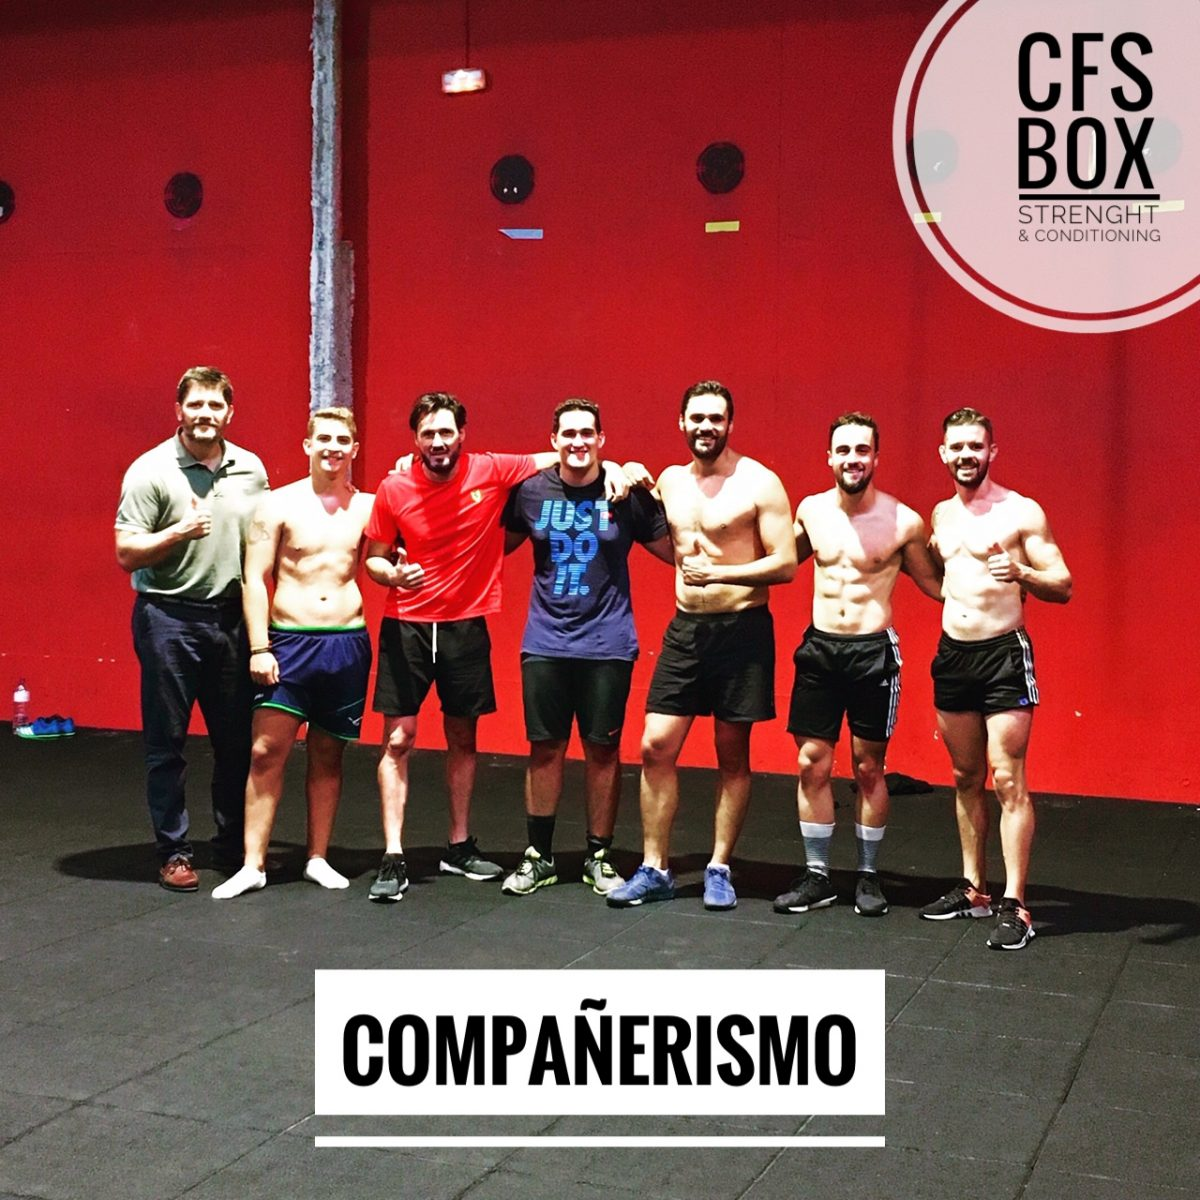 Wod CFS Box CrossFit Sevilla training compañerismo